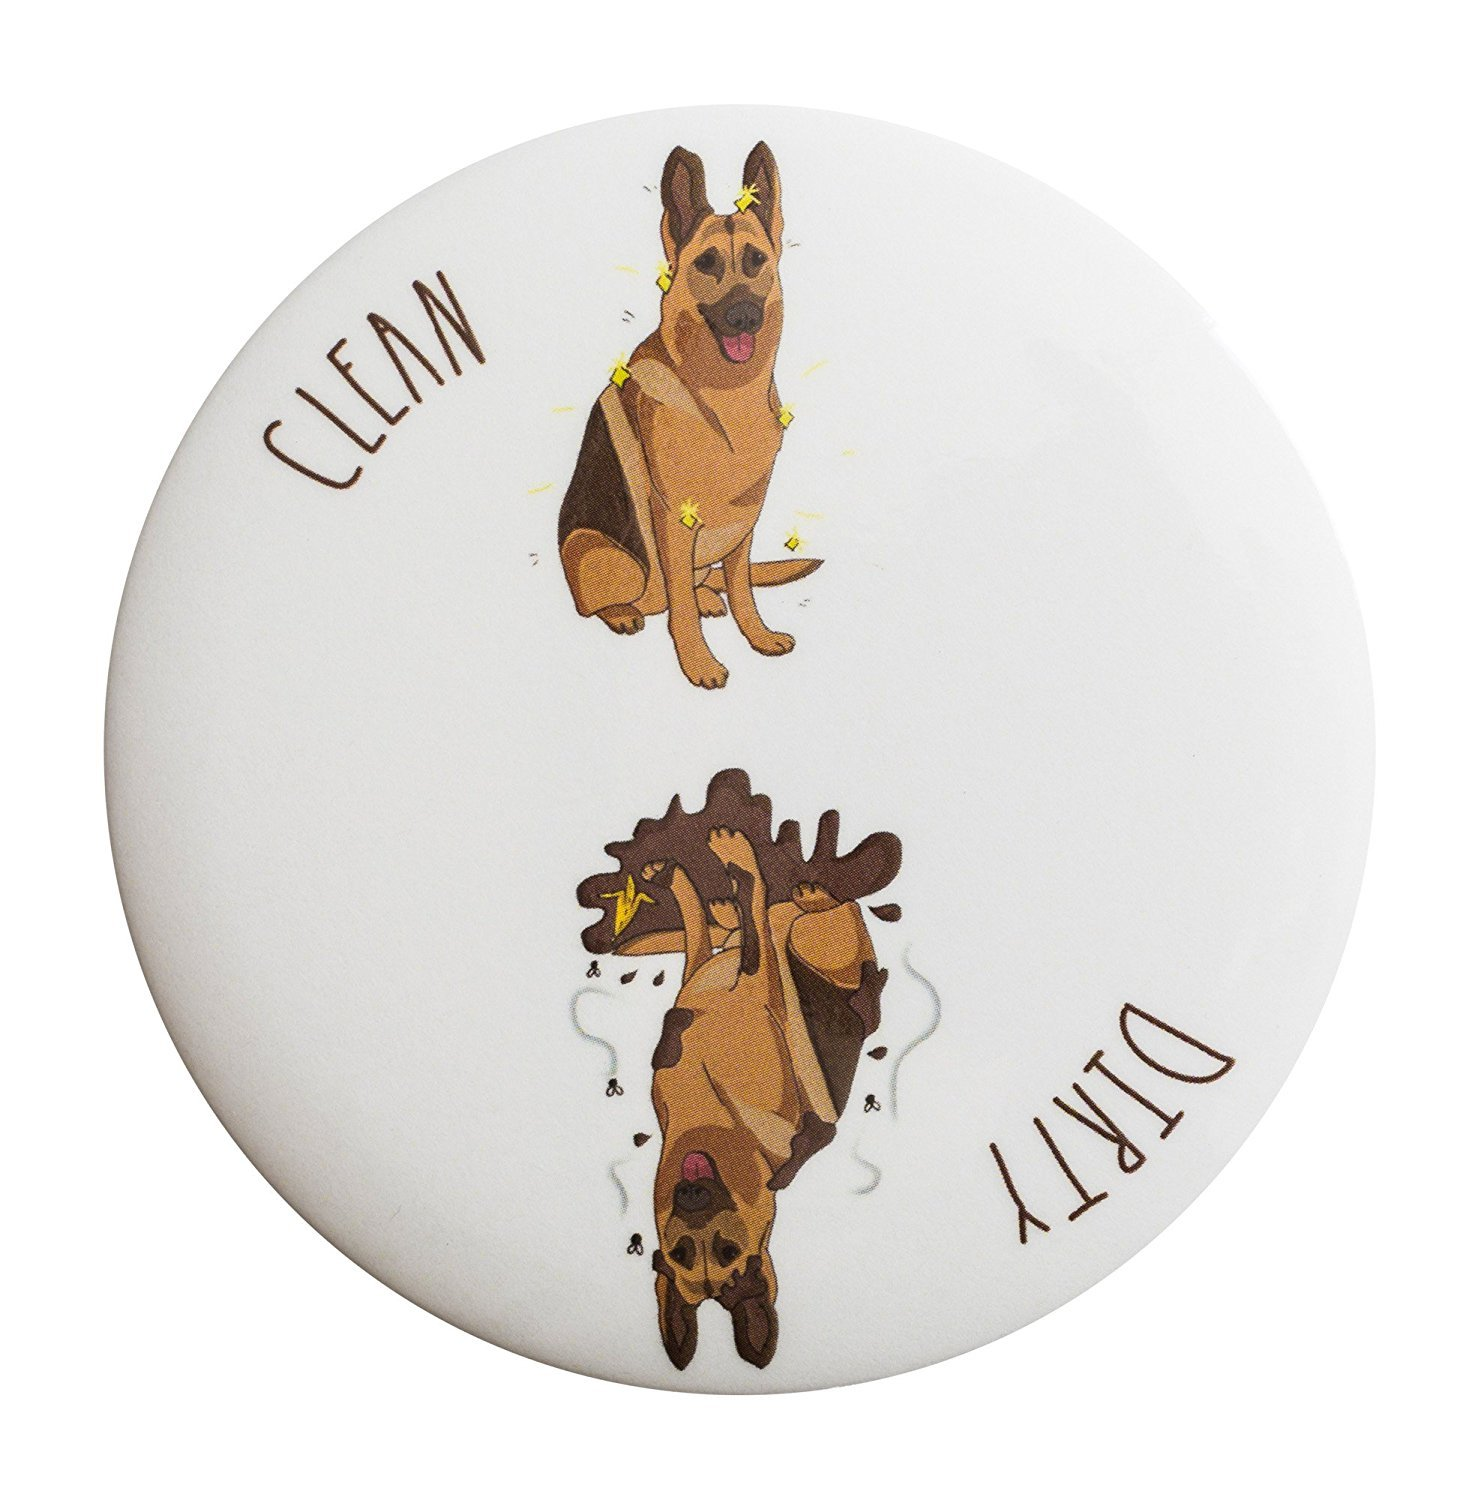 Sutter Signs Clean Dirty Dog Dishwasher Magnet (German Shepherd)